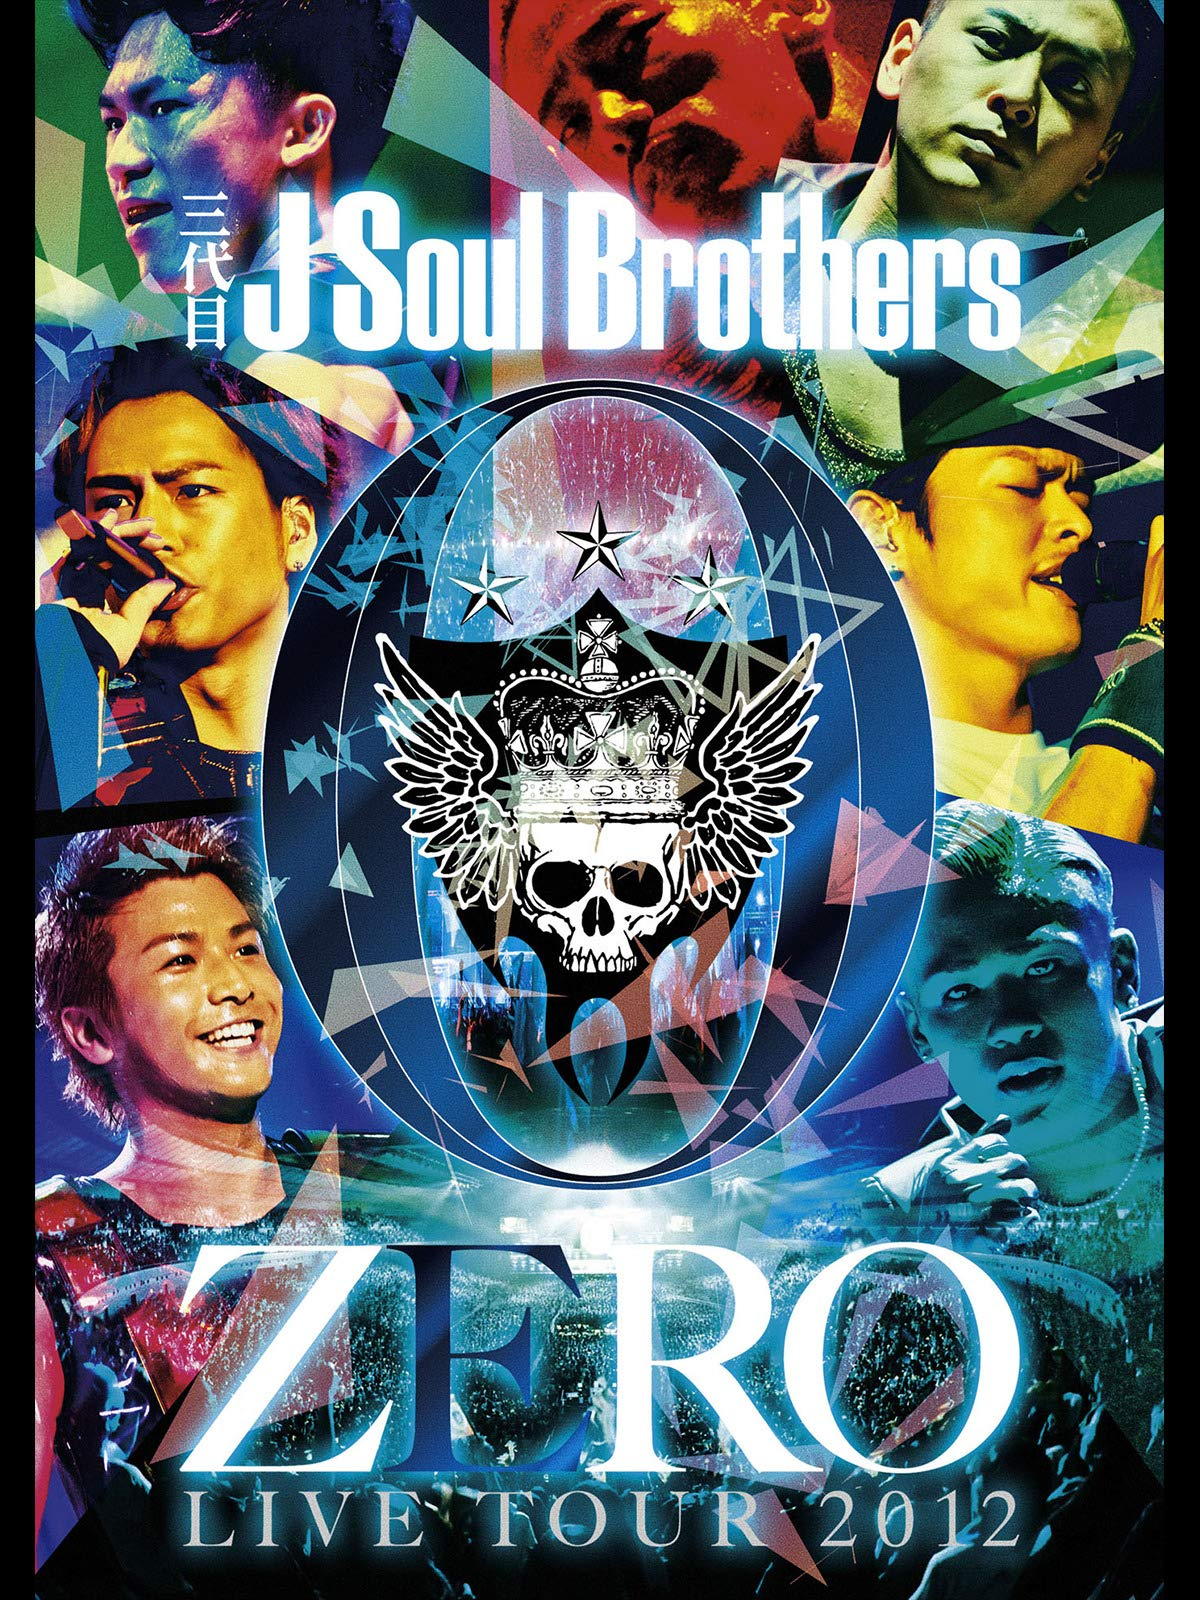 Amazon Co Jp Born In The Exile 三代目 J Soul Brothersの奇跡 を観る Prime Video